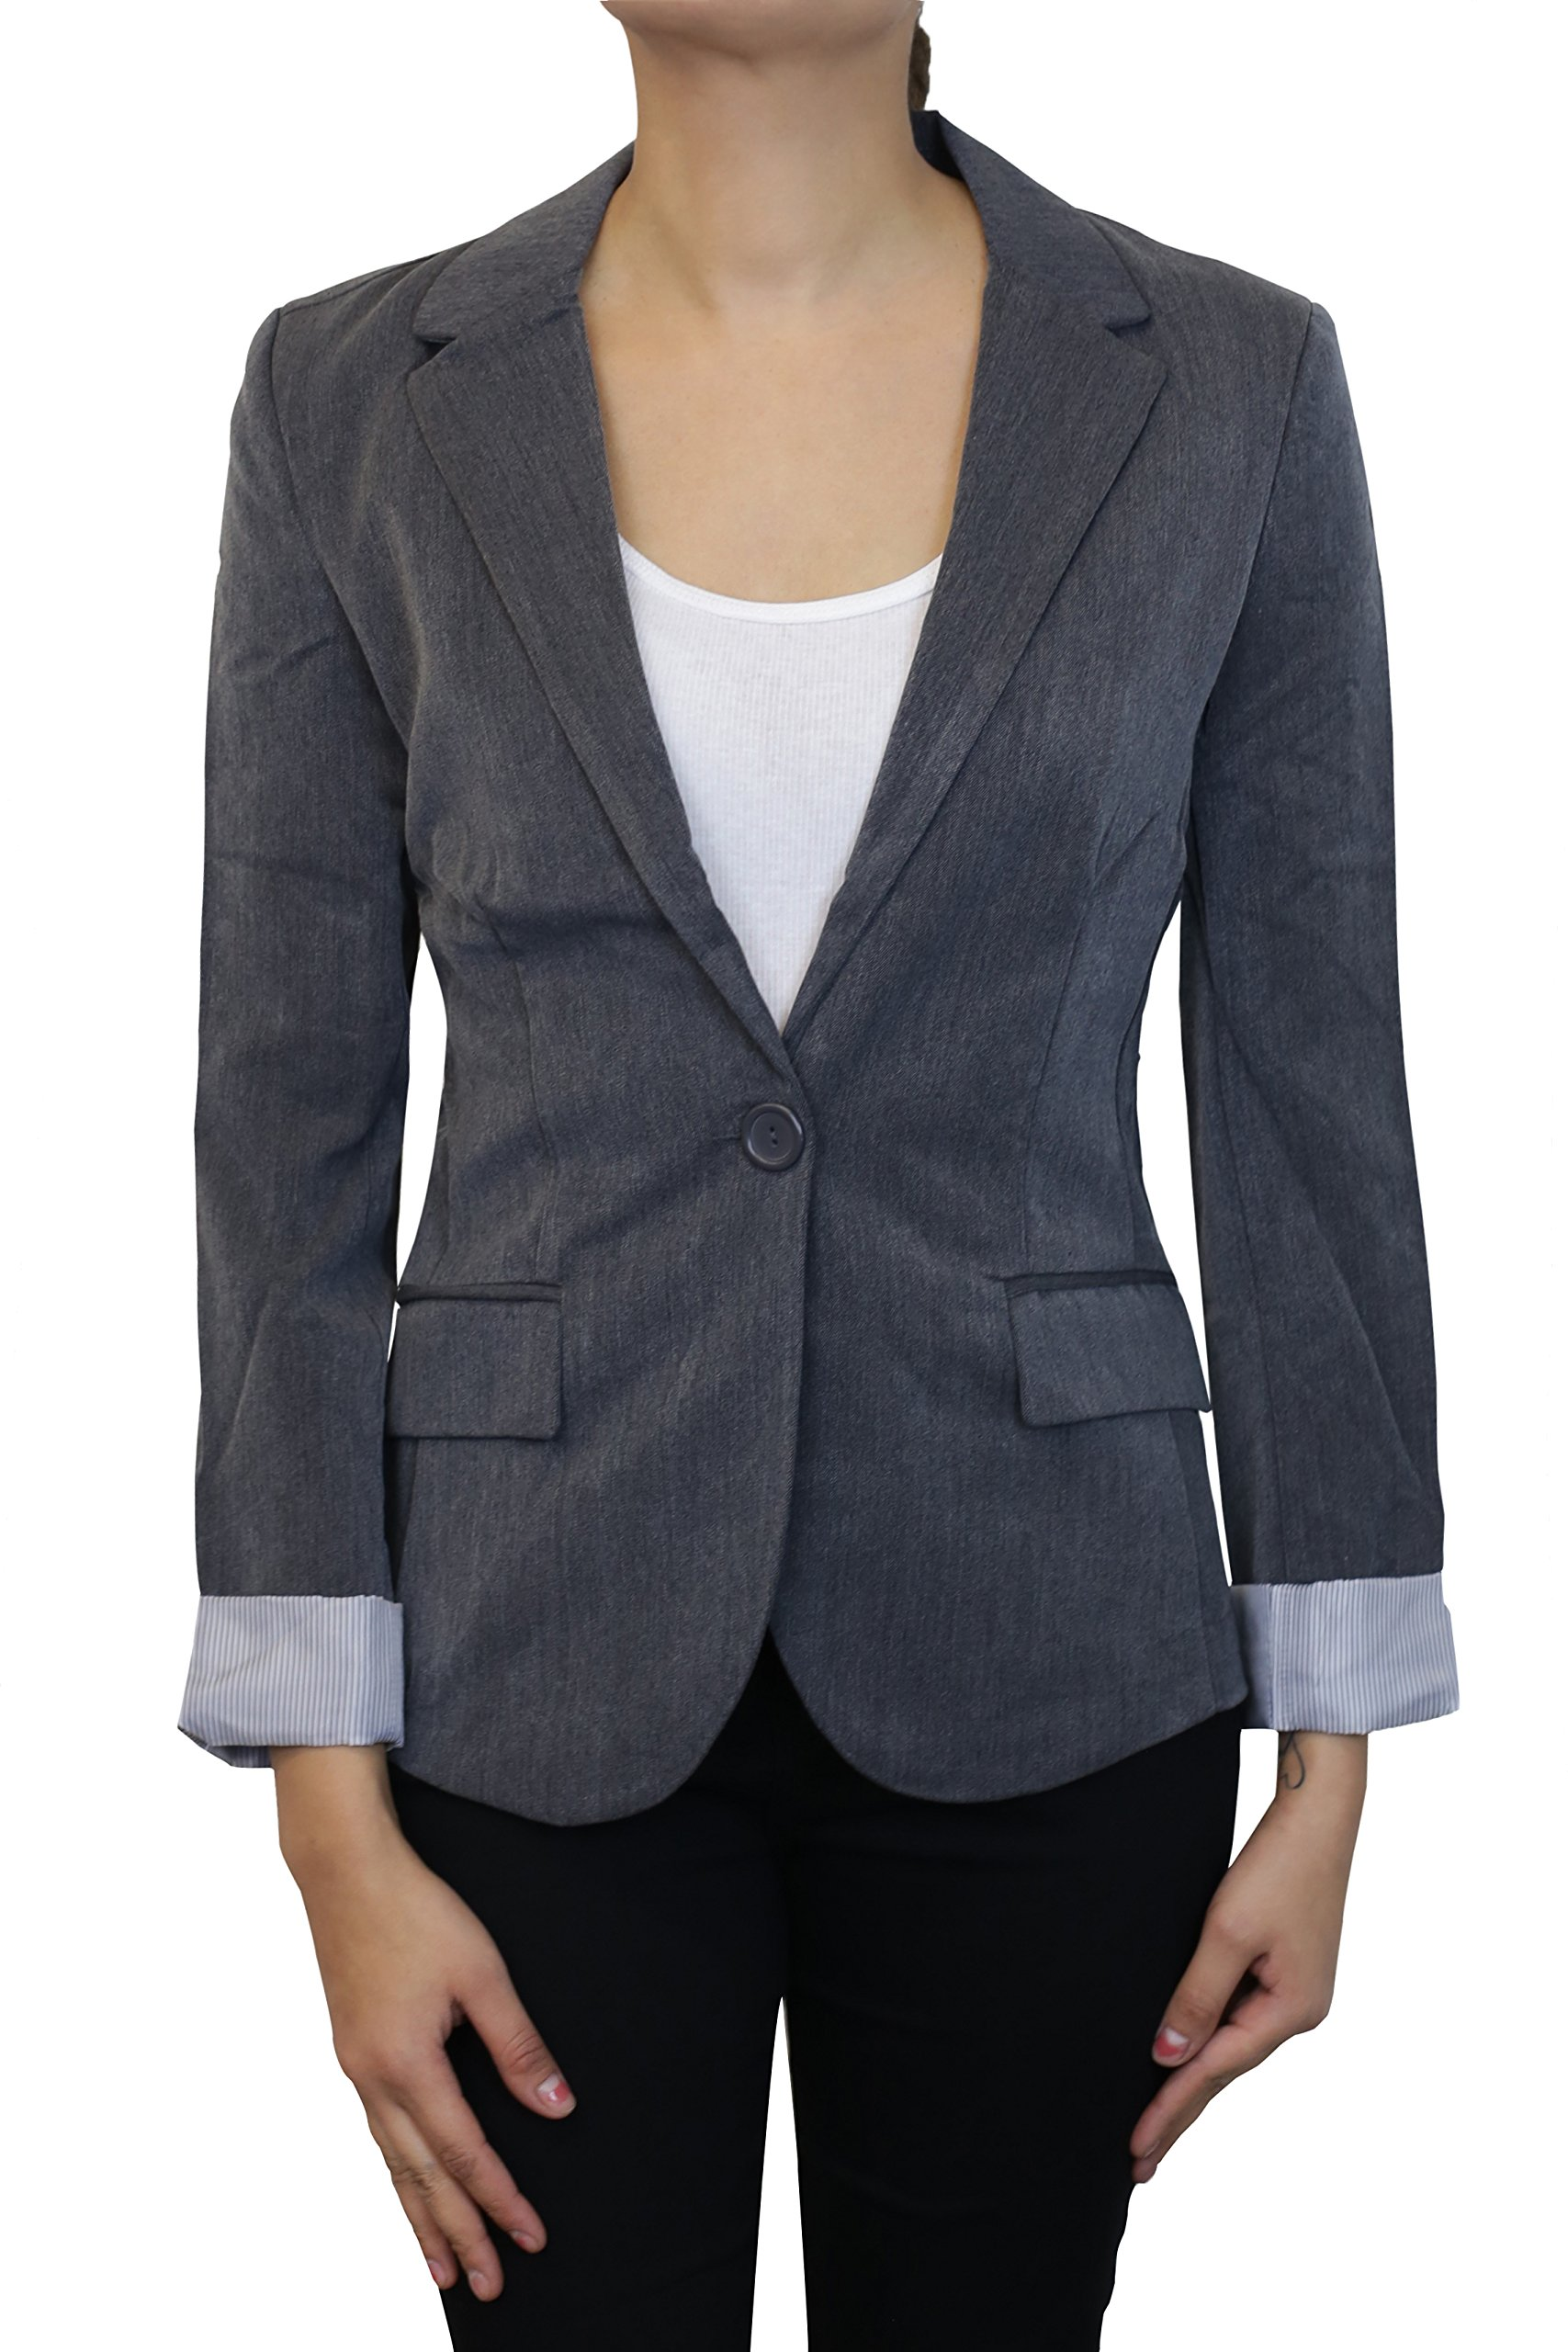 Instar Mode Women's Versatile Business Attire Blazers in Varies Styles (B22117 Charcoal, Large)